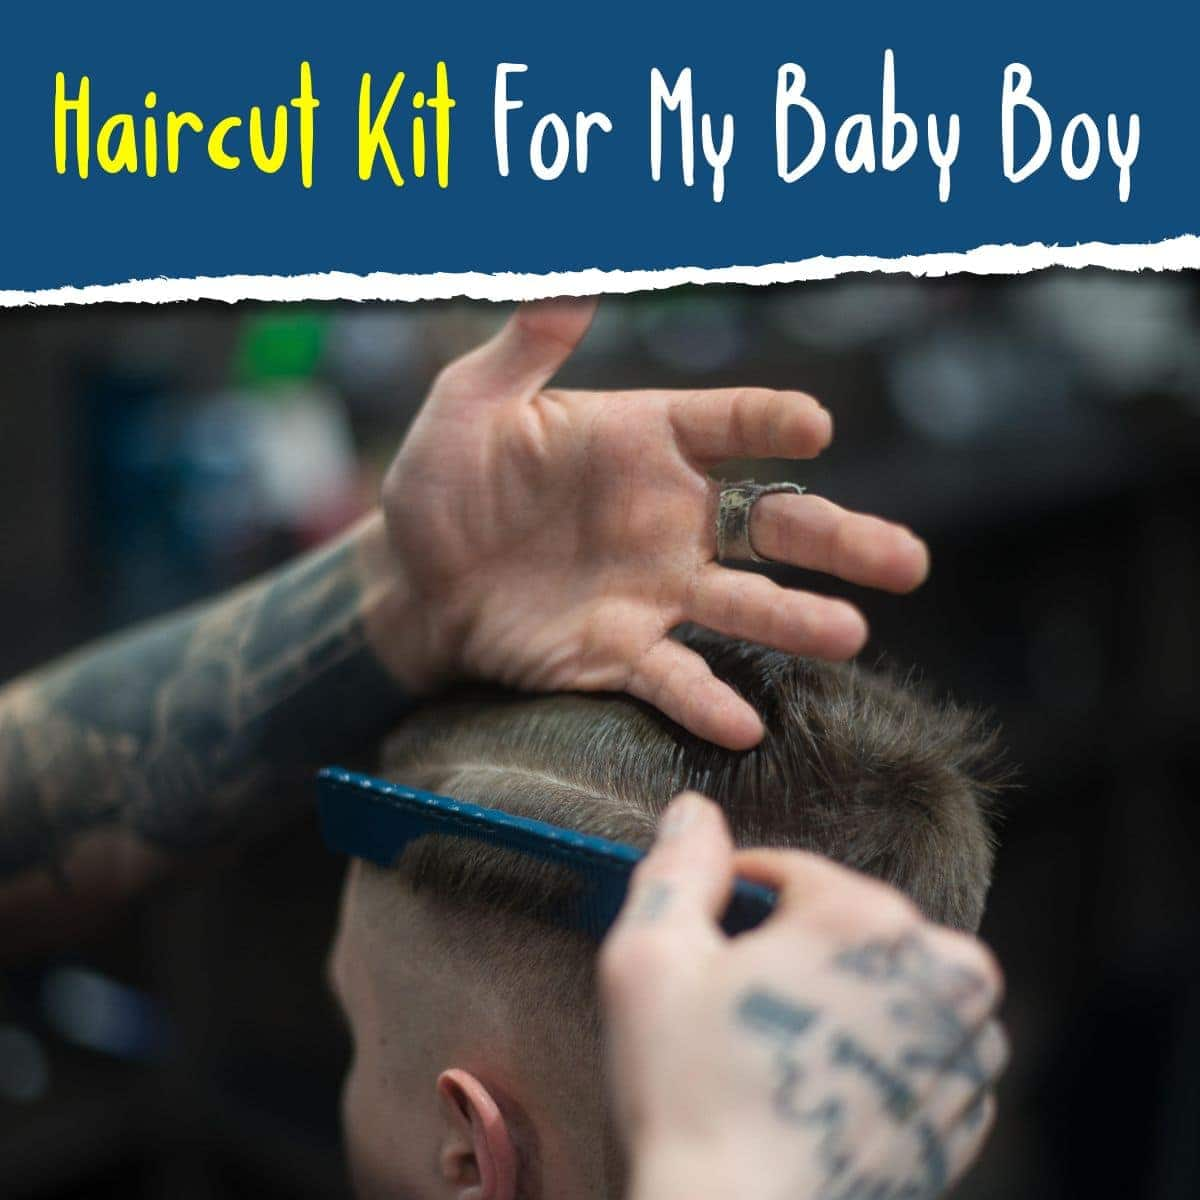 Haircut Kit For My Baby Boy